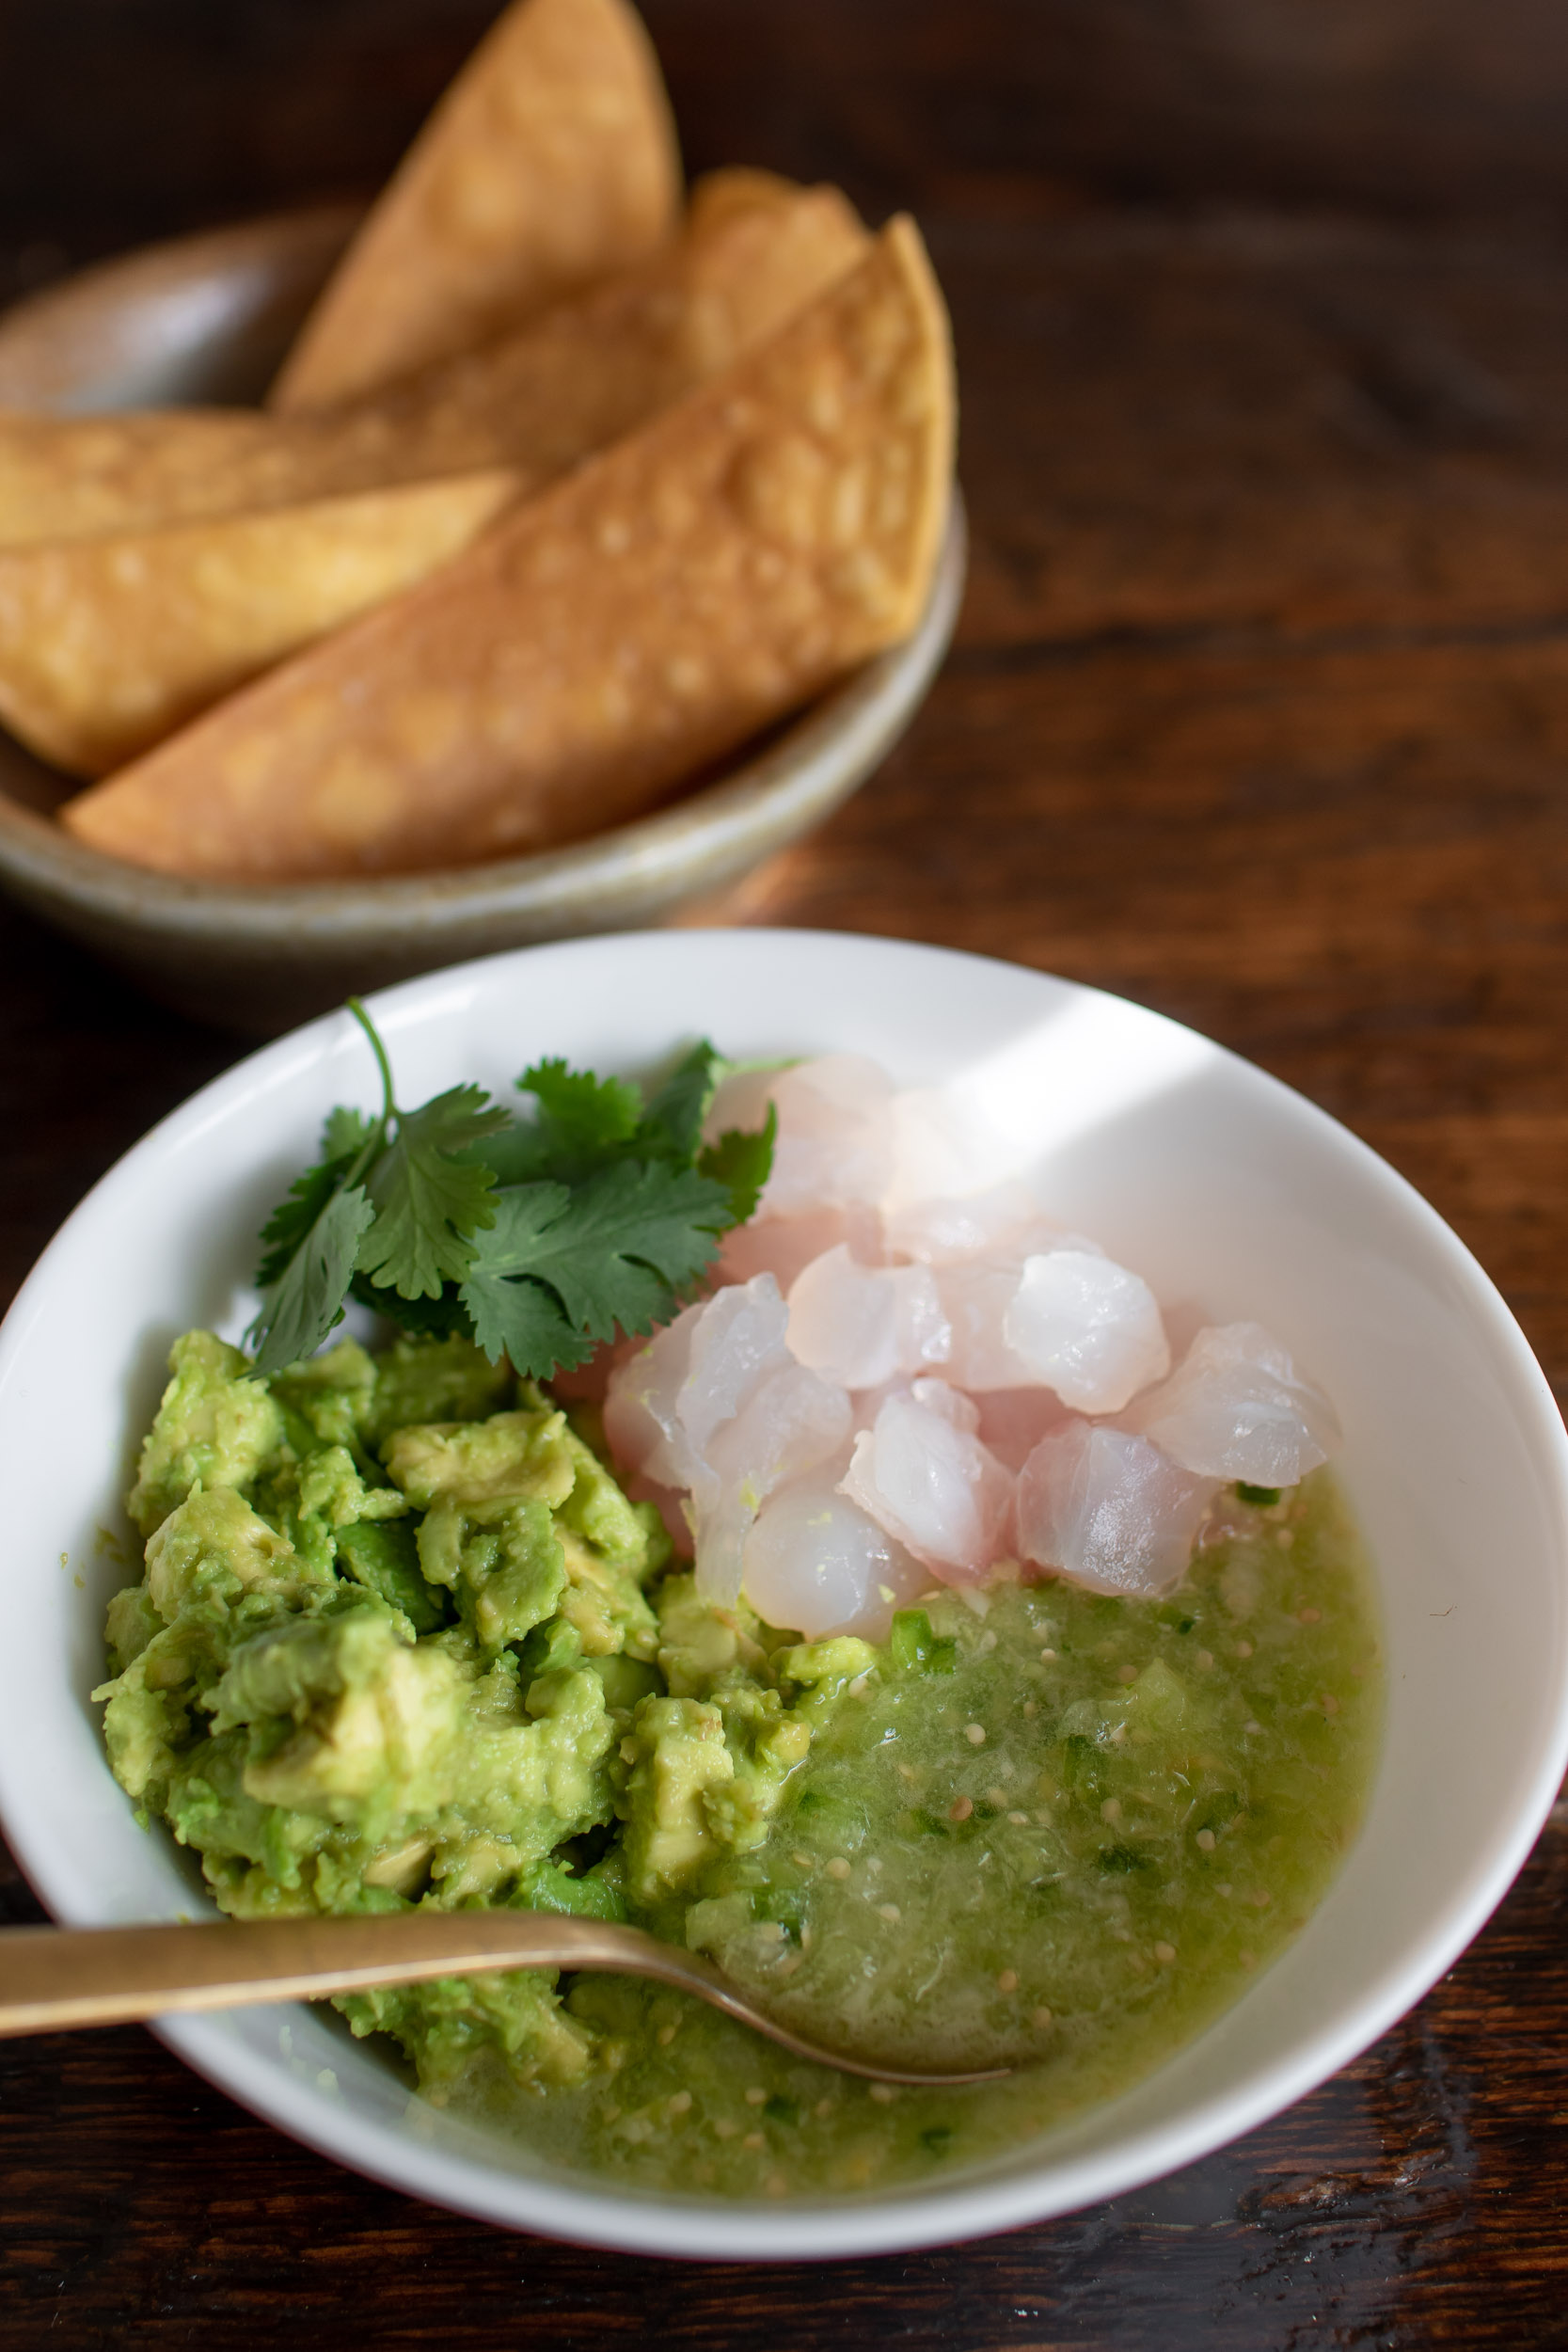 Carl Dooley's Tomatillo Salsa with Avocado and American Red Snapper